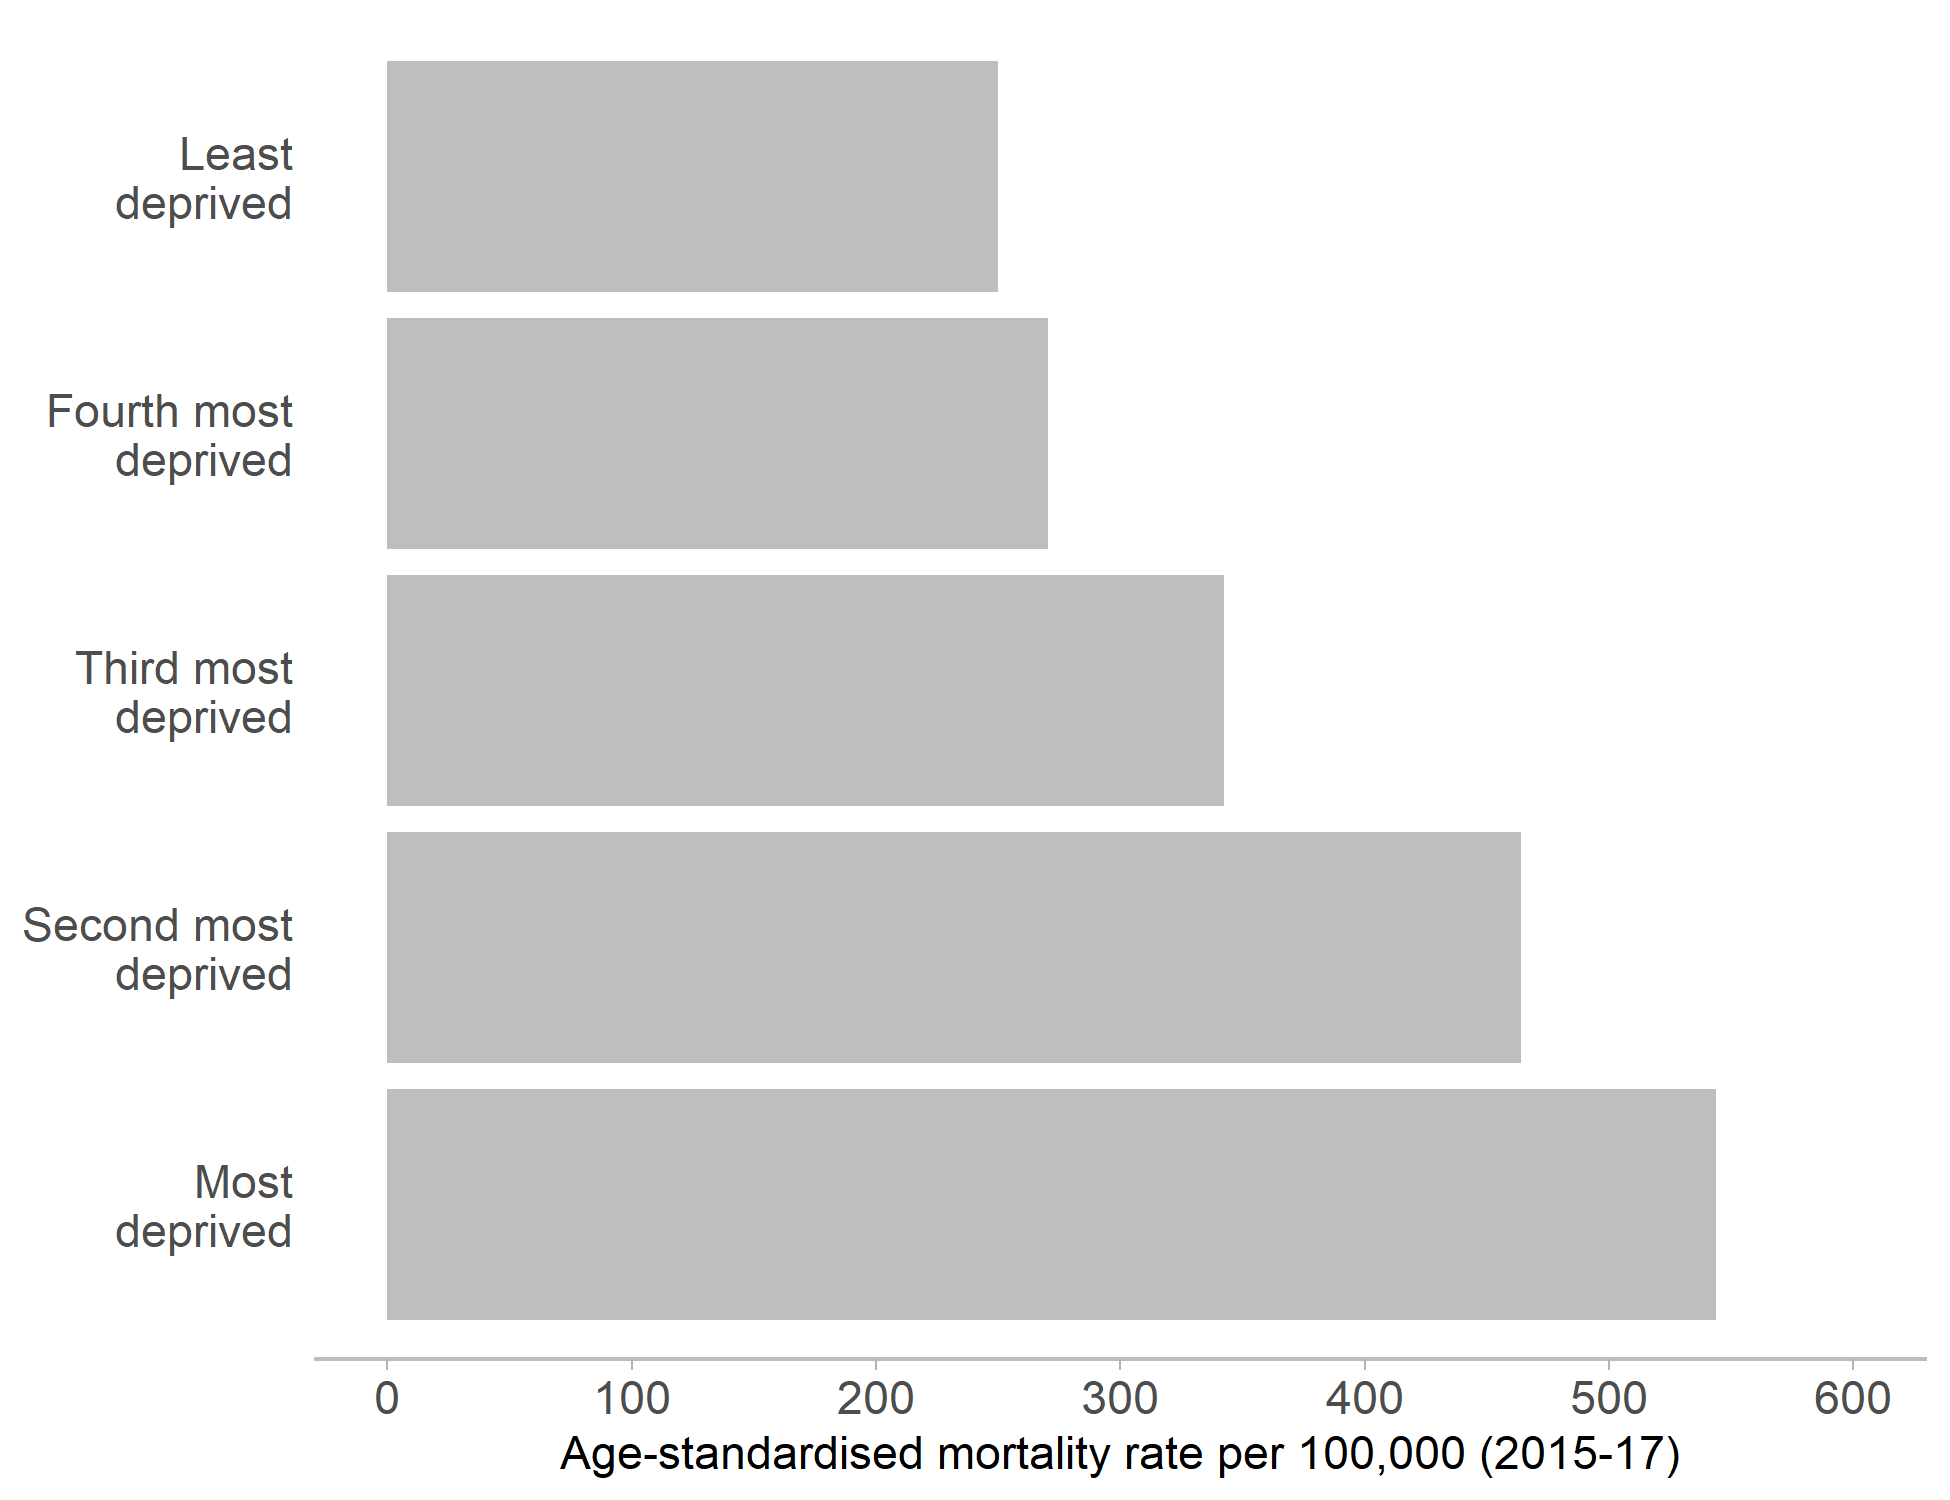 Figure 1: Age-standardarised mortality rates per 100,000 in Medway.